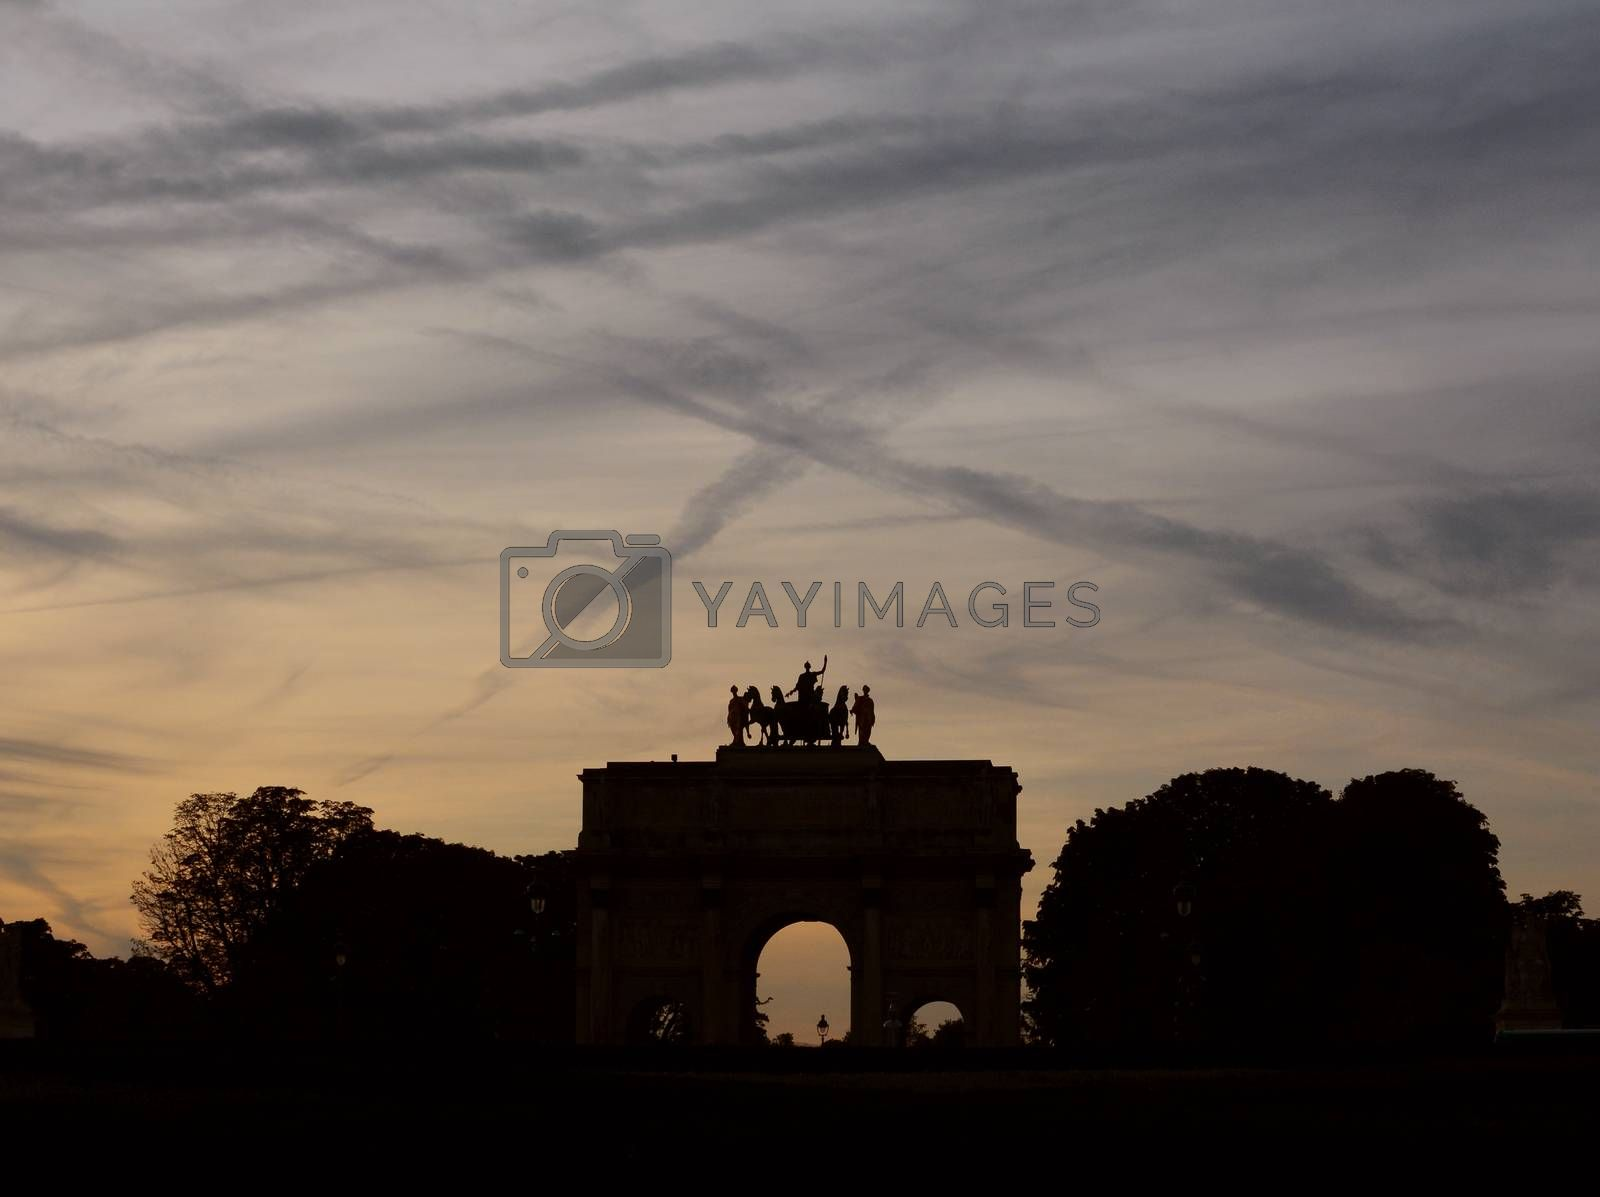 Arc de Triomphe du Carrousel near the Louvre in Paris in silhouette against a twilight sky covered in contrails